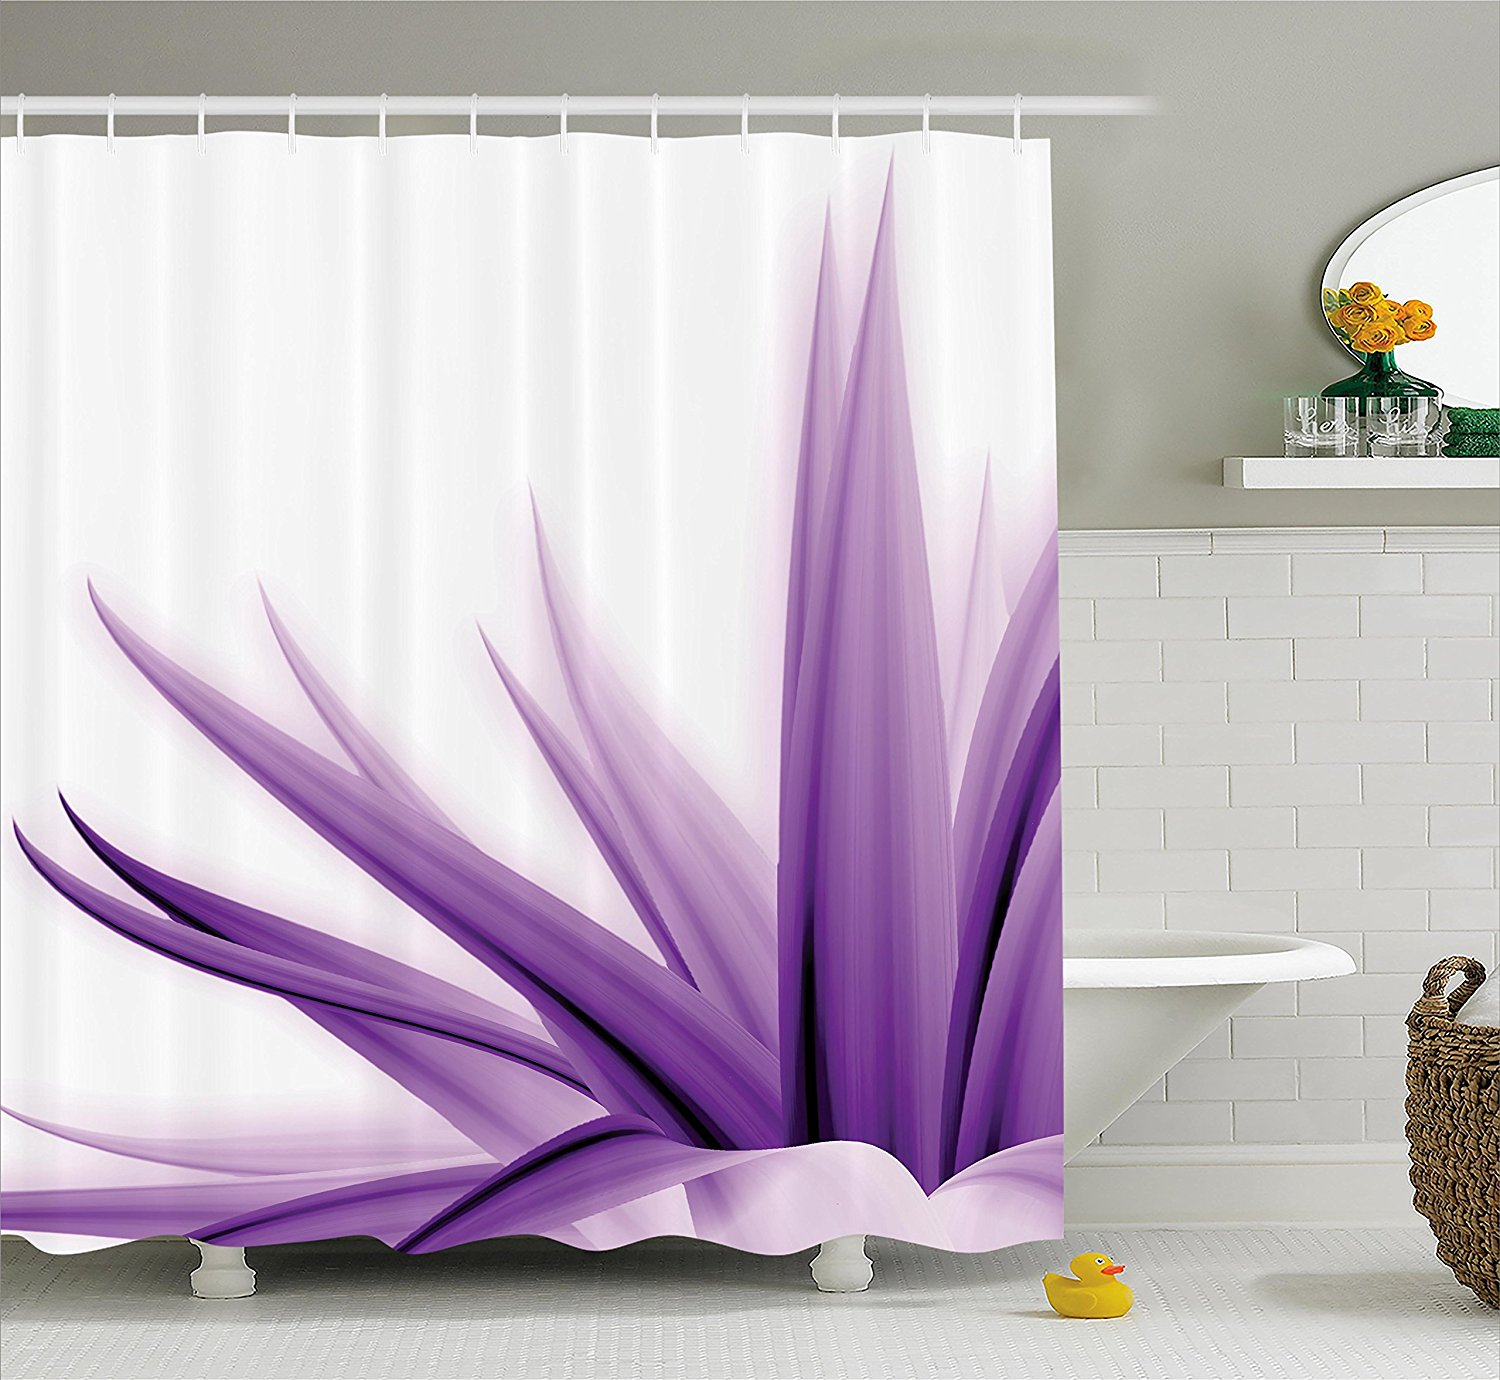 Flower Decor Shower Curtain by Ambesonne, Purple Ombre Long Leaves Water Colored Print with Calming Details Image, Fabric Bathroom Decor Set with Hooks, 70 Inches, Purple and White